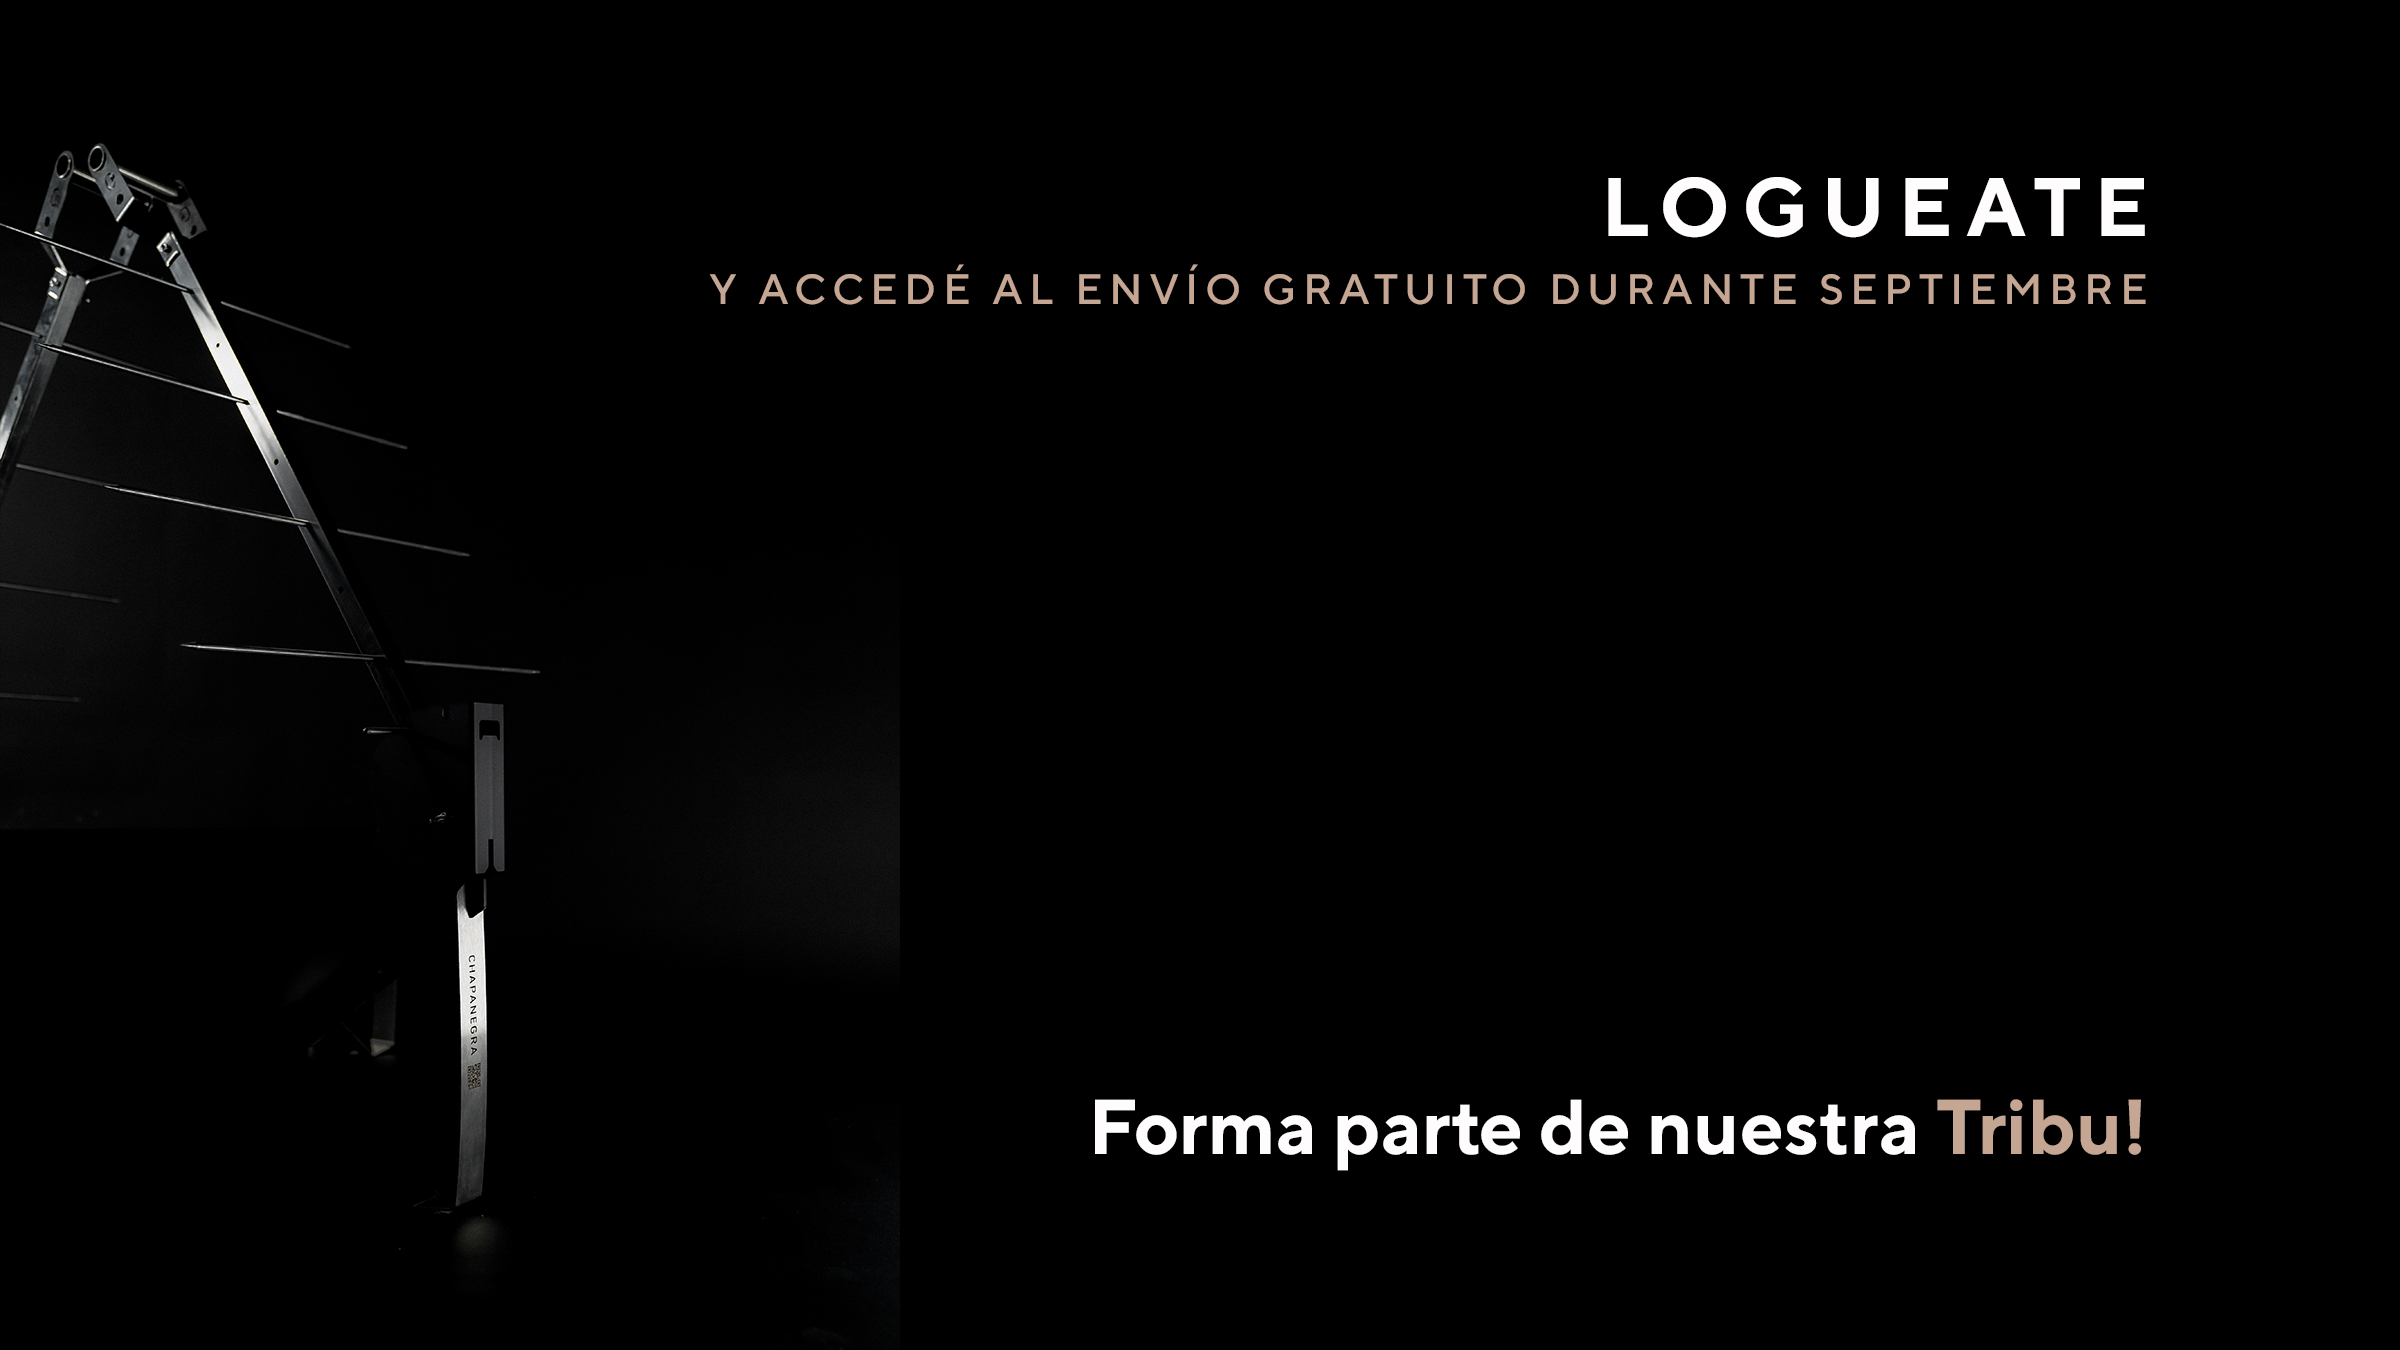 BANNER HOME LOGUEATE SEPTIEMBRE 2021